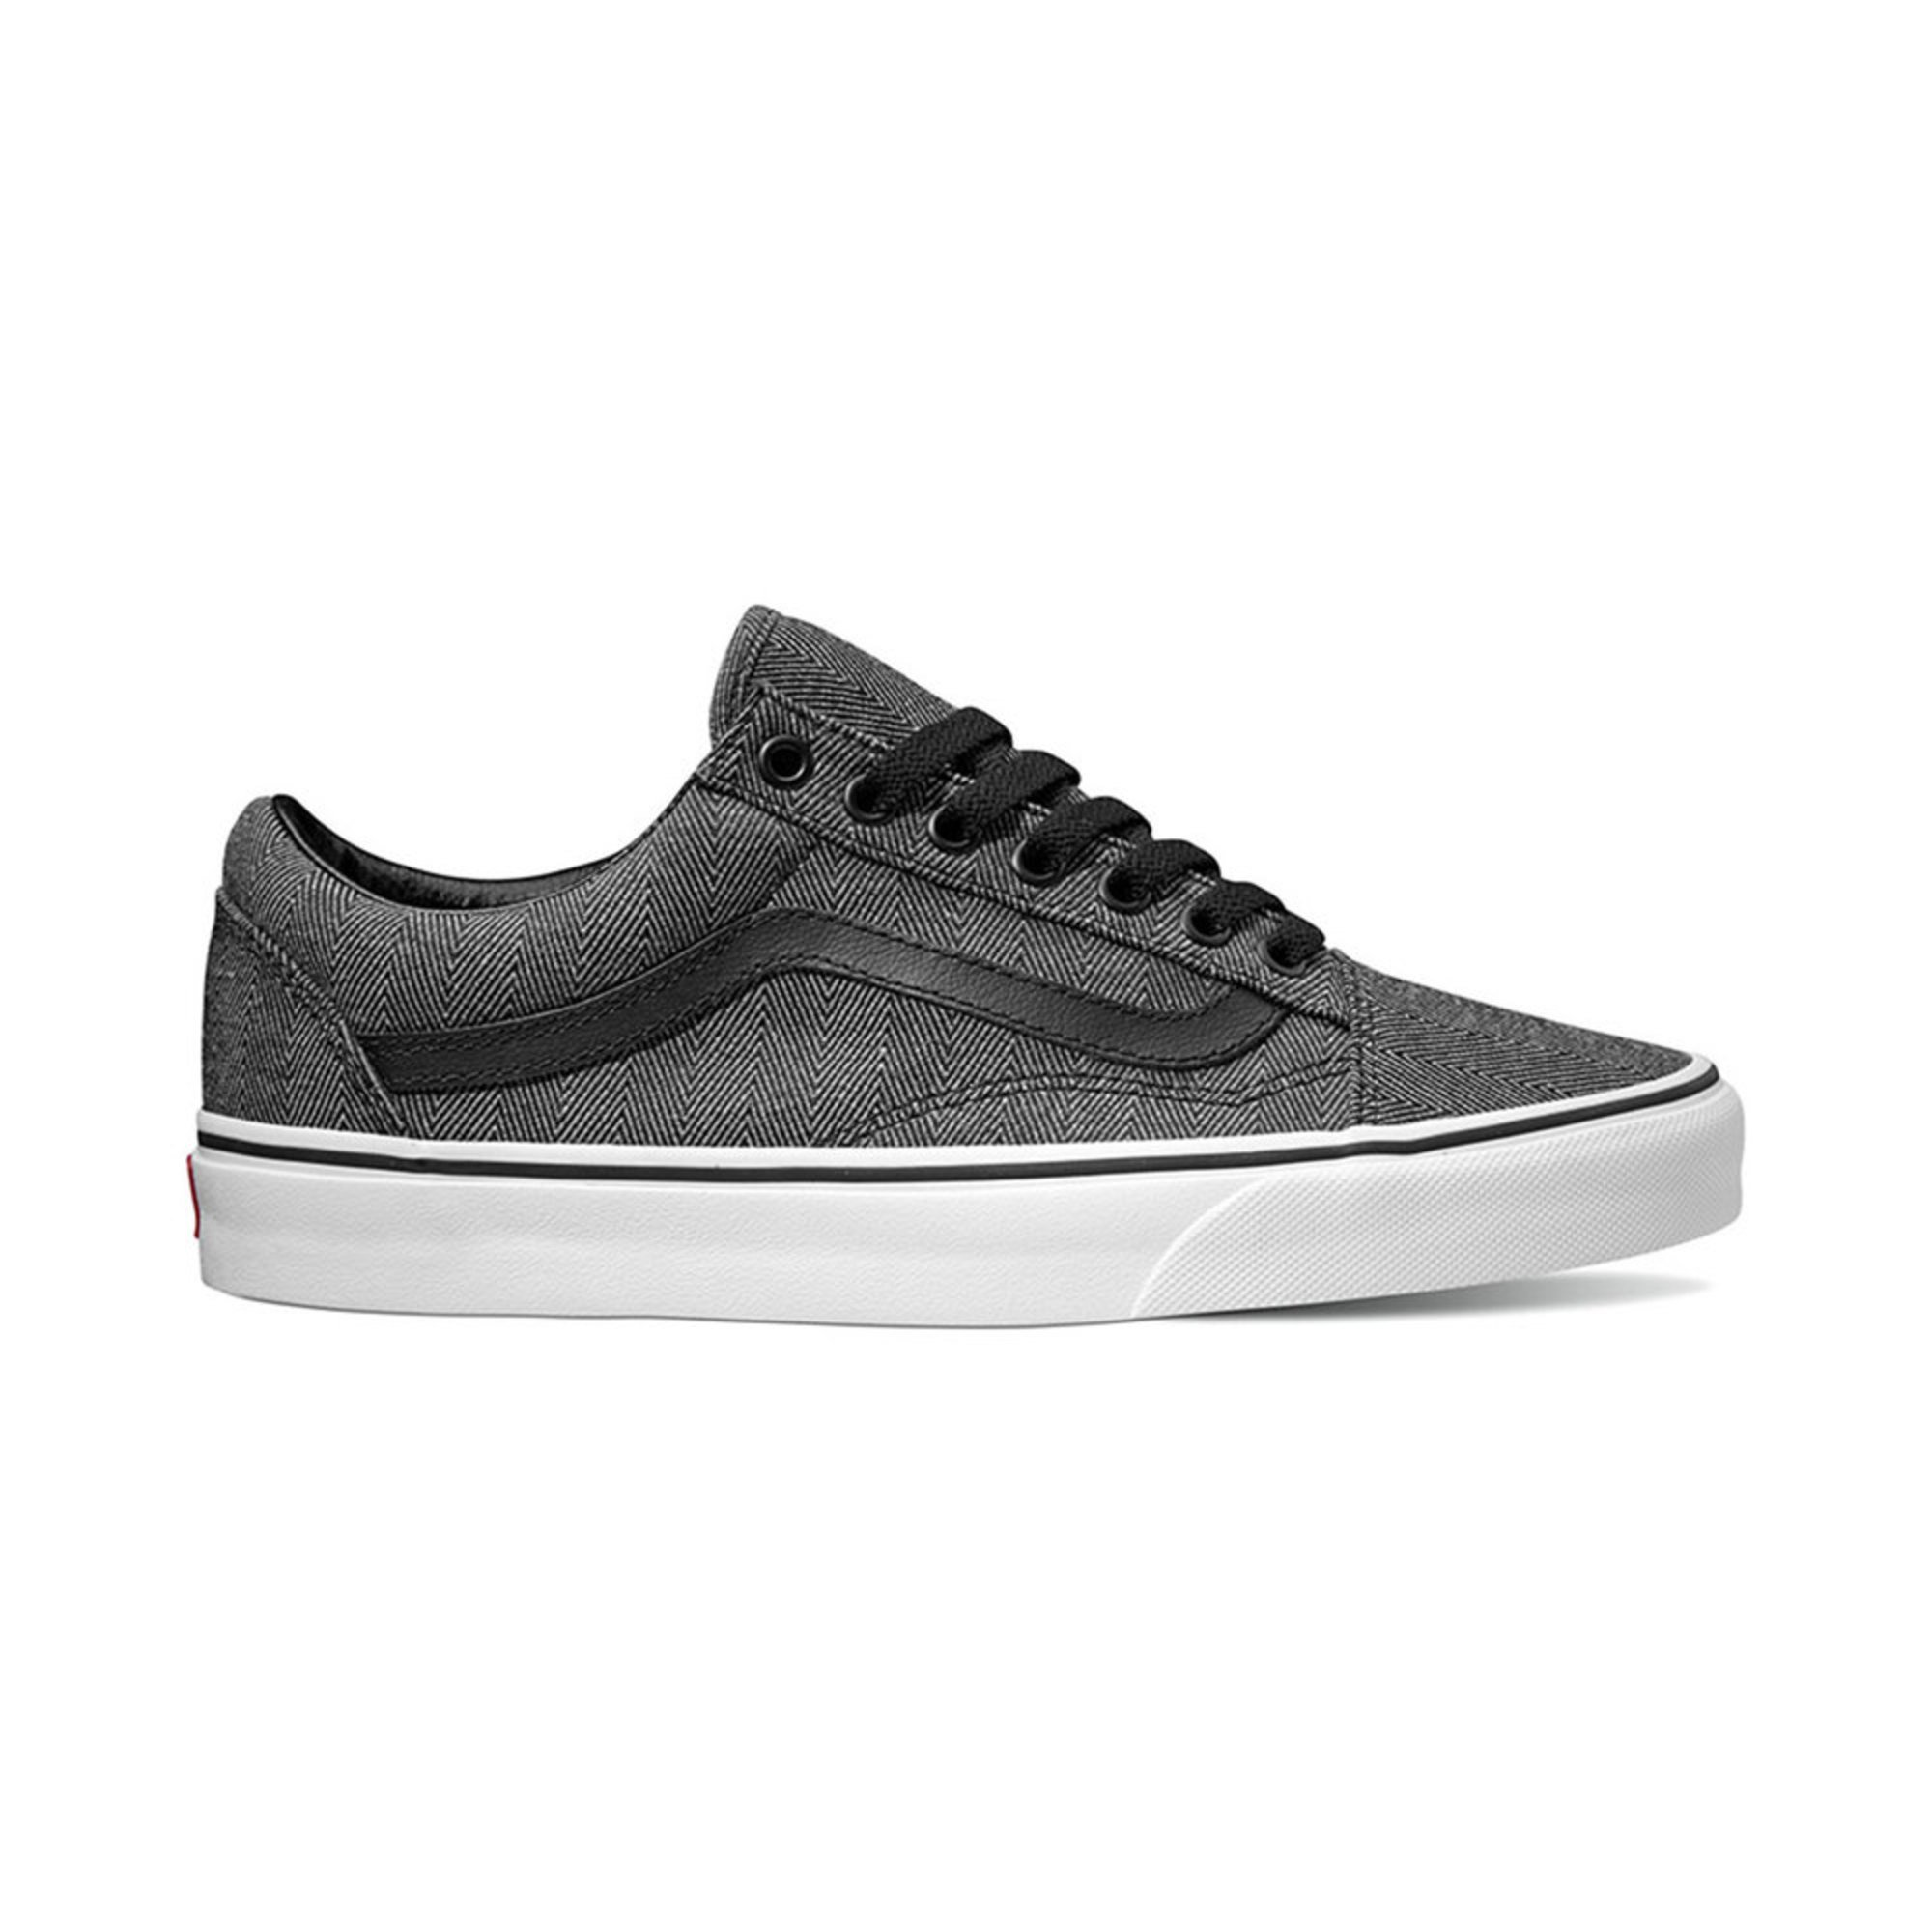 d5979bd20d07a Vans Men's Old Skool Skate Shoe | Men's Skate Shoes | Fitness - Shop ...